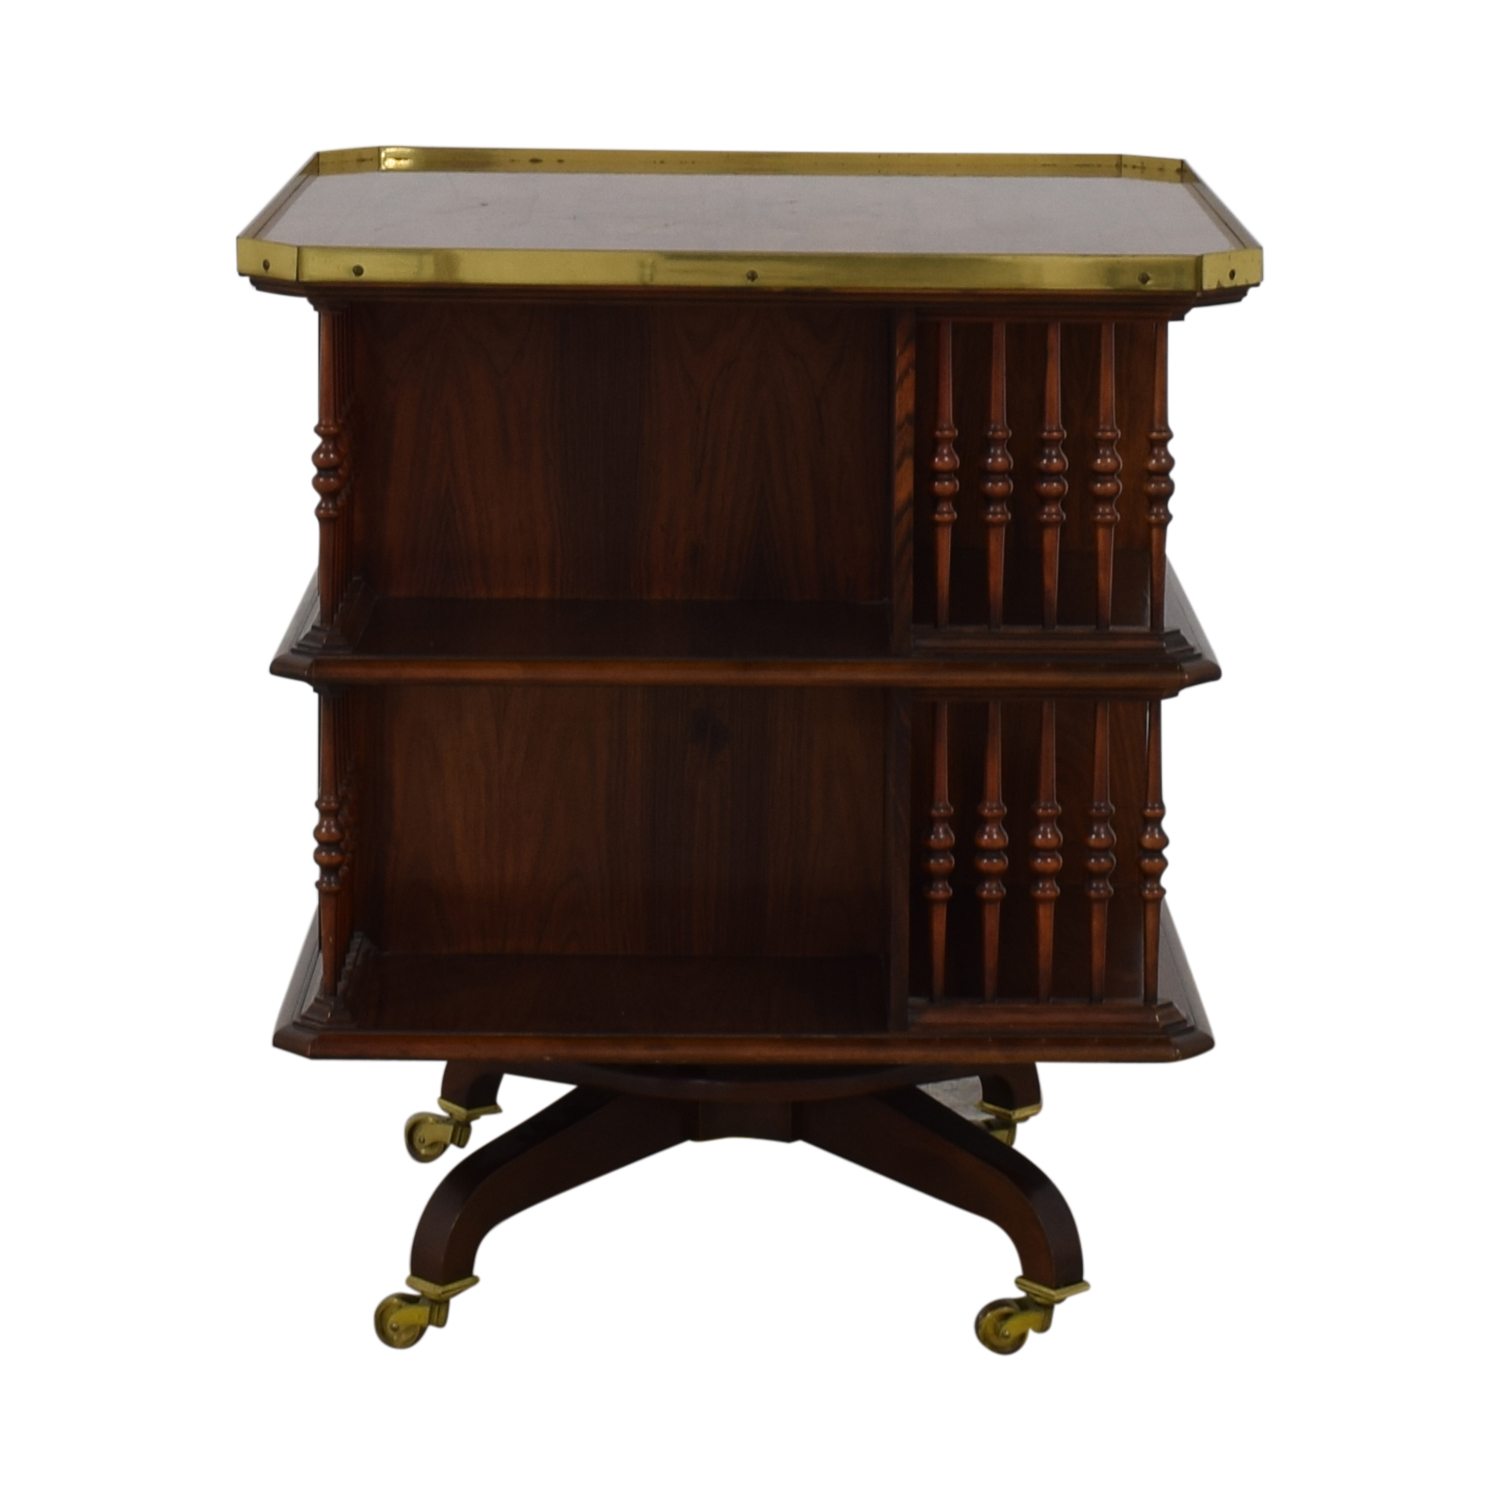 Baker Furniture Baker Furniture Swiveling Library Table brown